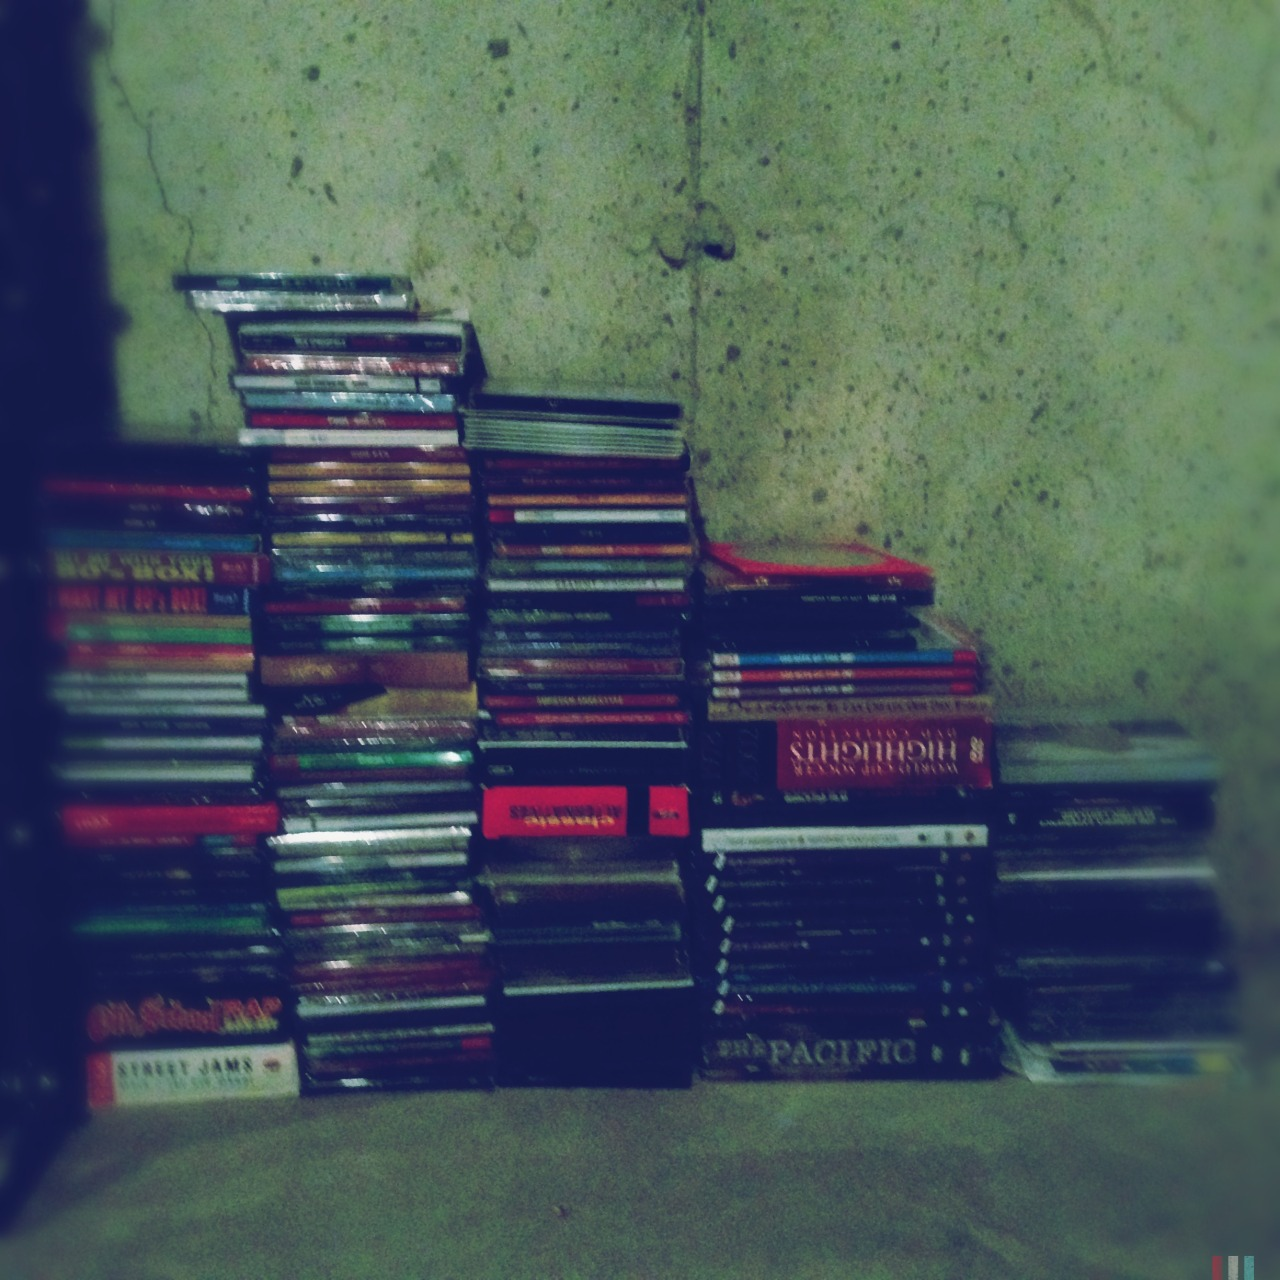 Bored and snapping things around my house. #cd #music #obsession #collection #basement #night